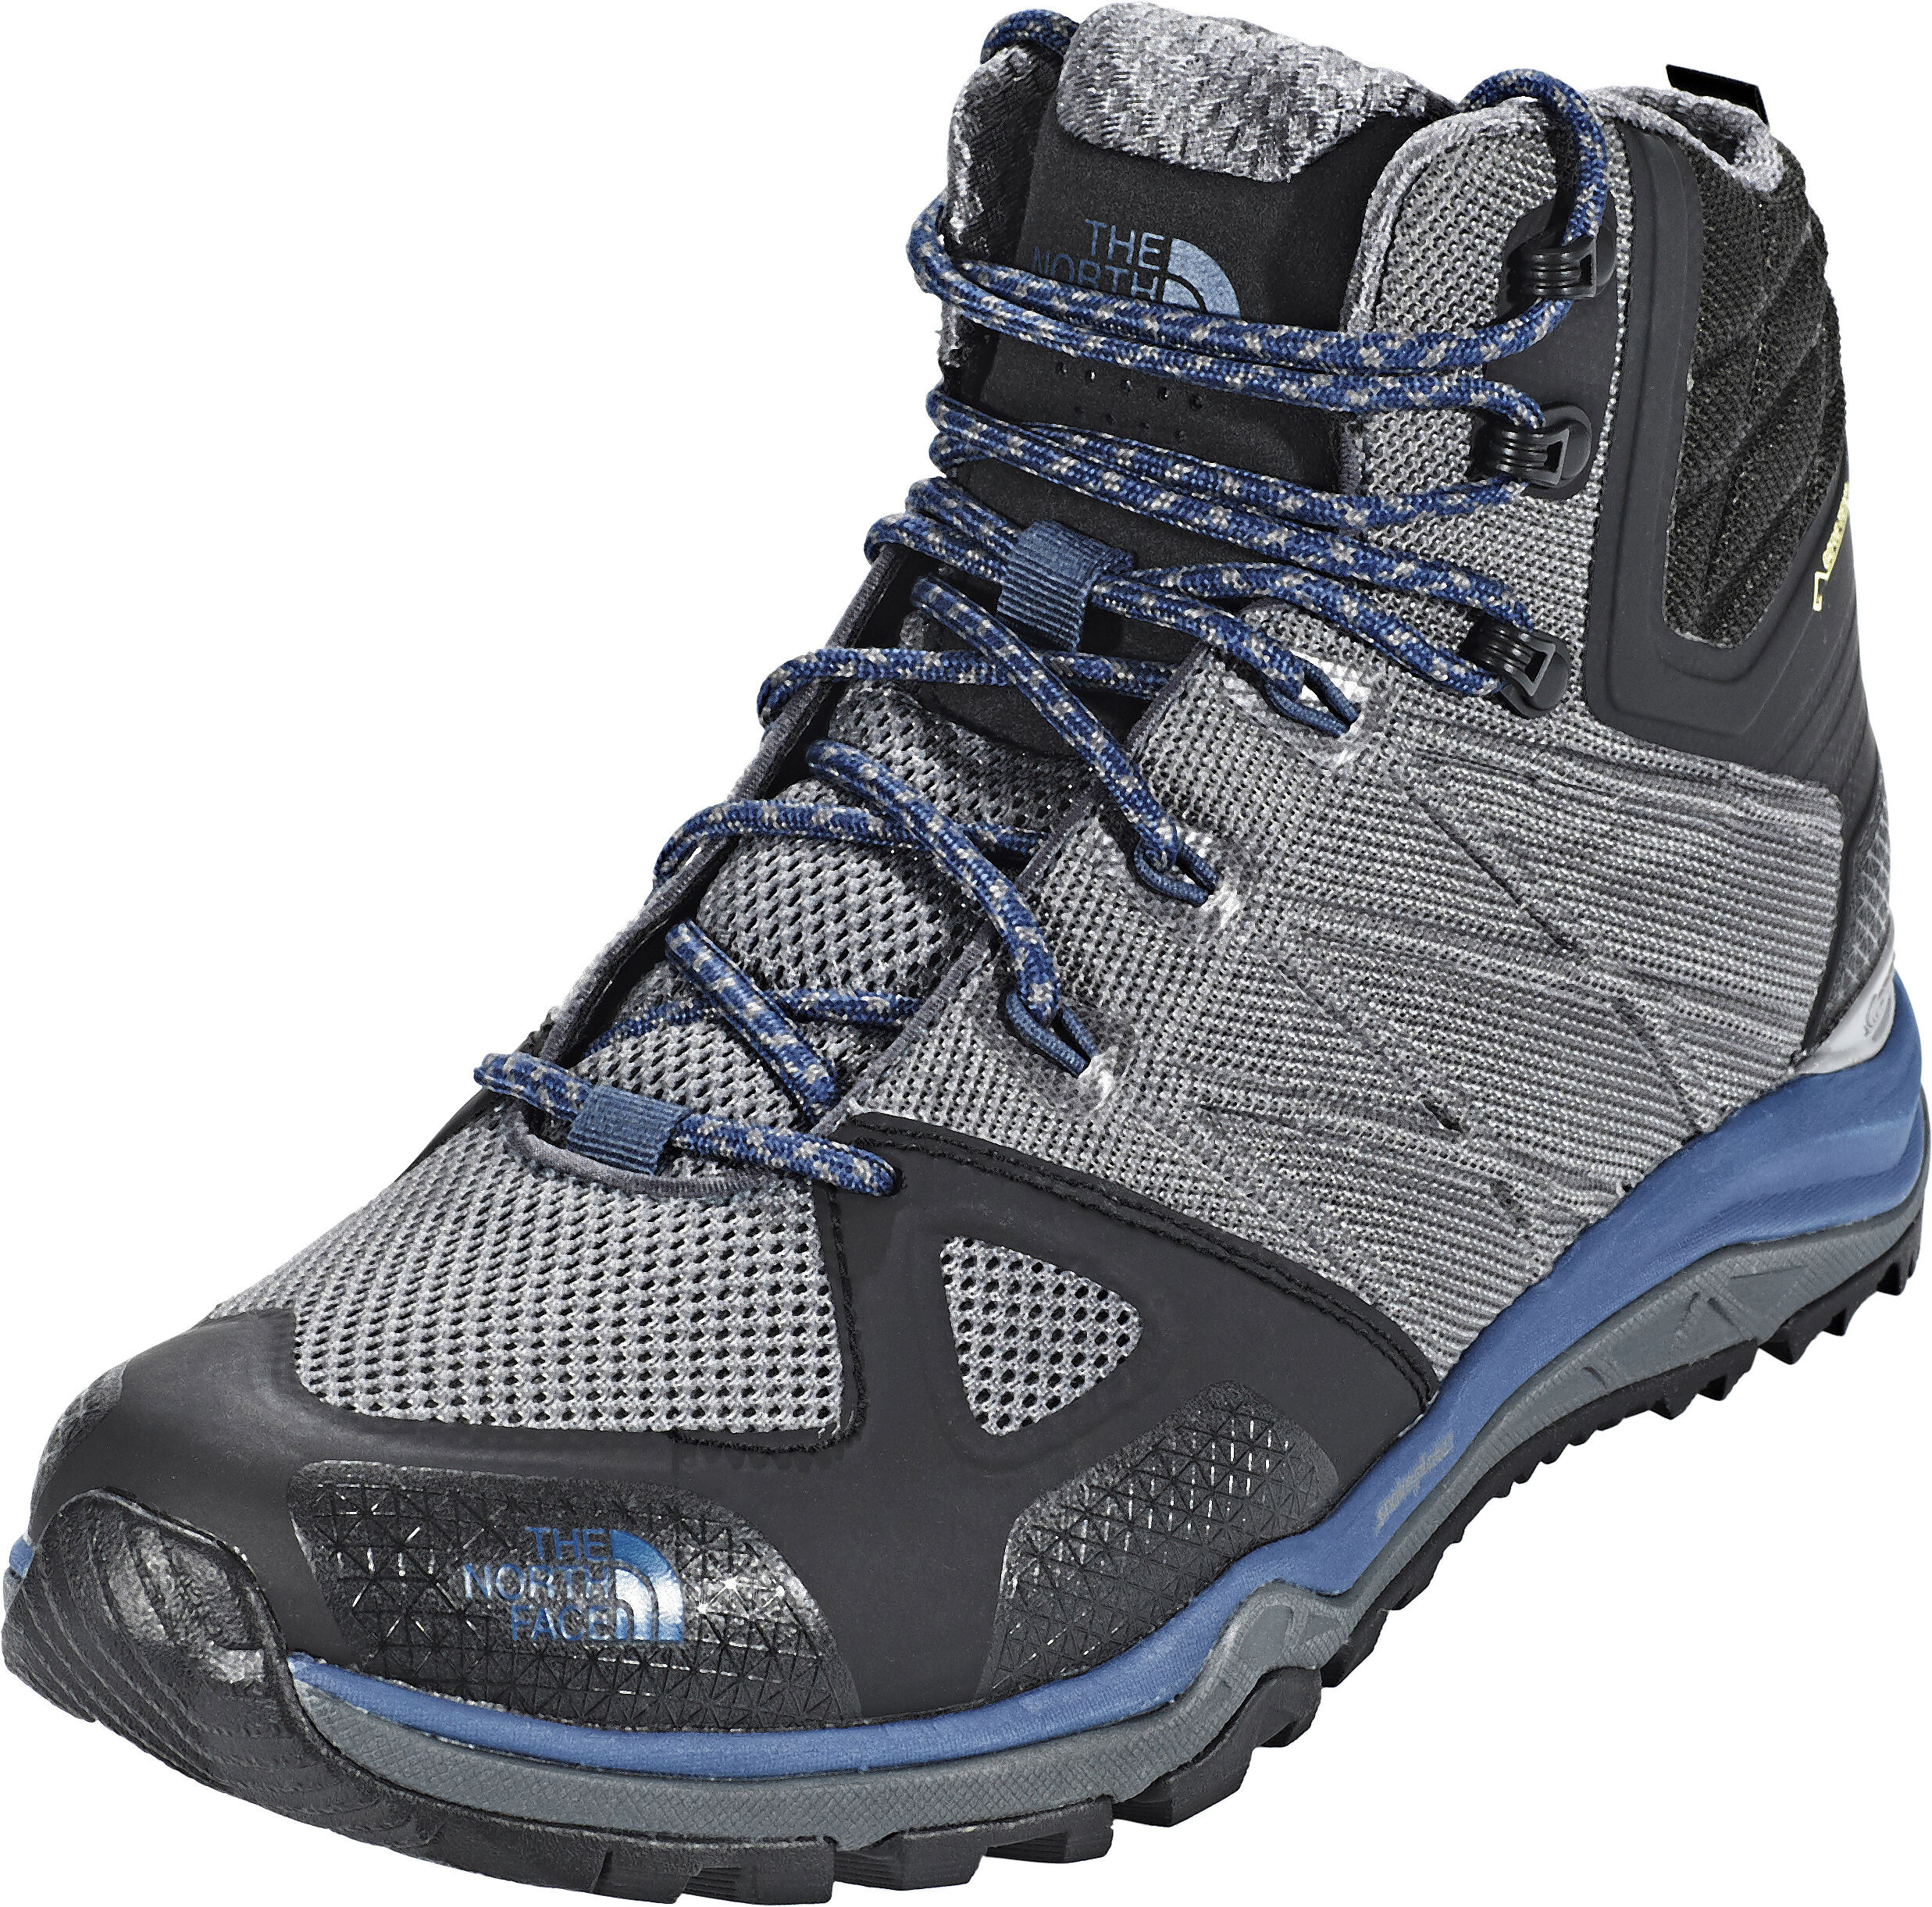 82d48ee45a The North Face Ultra Fastpack II Mid GTX - Chaussures Homme - gris/noir